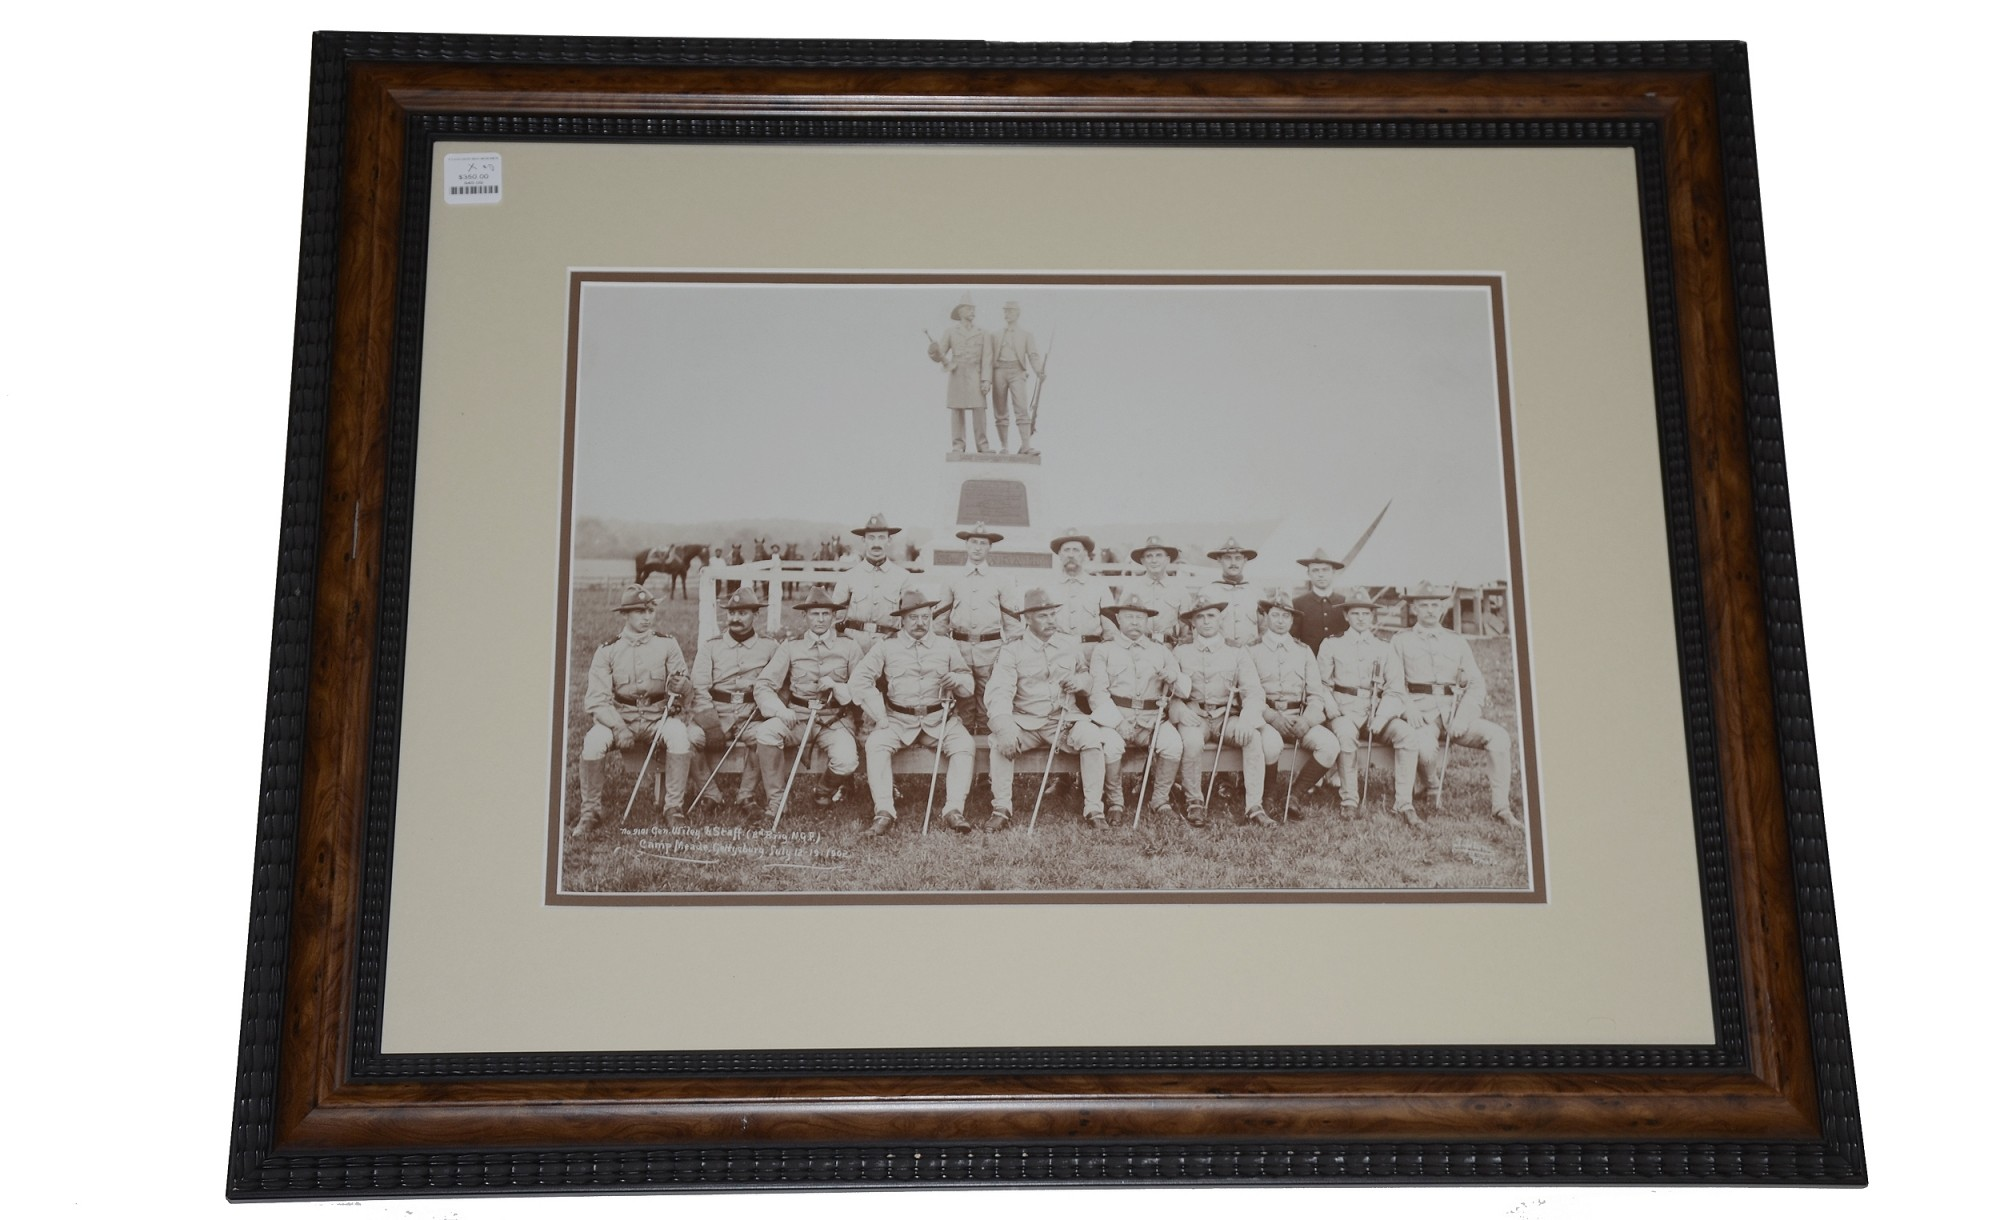 LARGE FRAMED PHOTO OF PENNSYLVANIA NATIONAL GUARD OFFICERS IN EXCELSIOR FIELD, GETTYSBURG